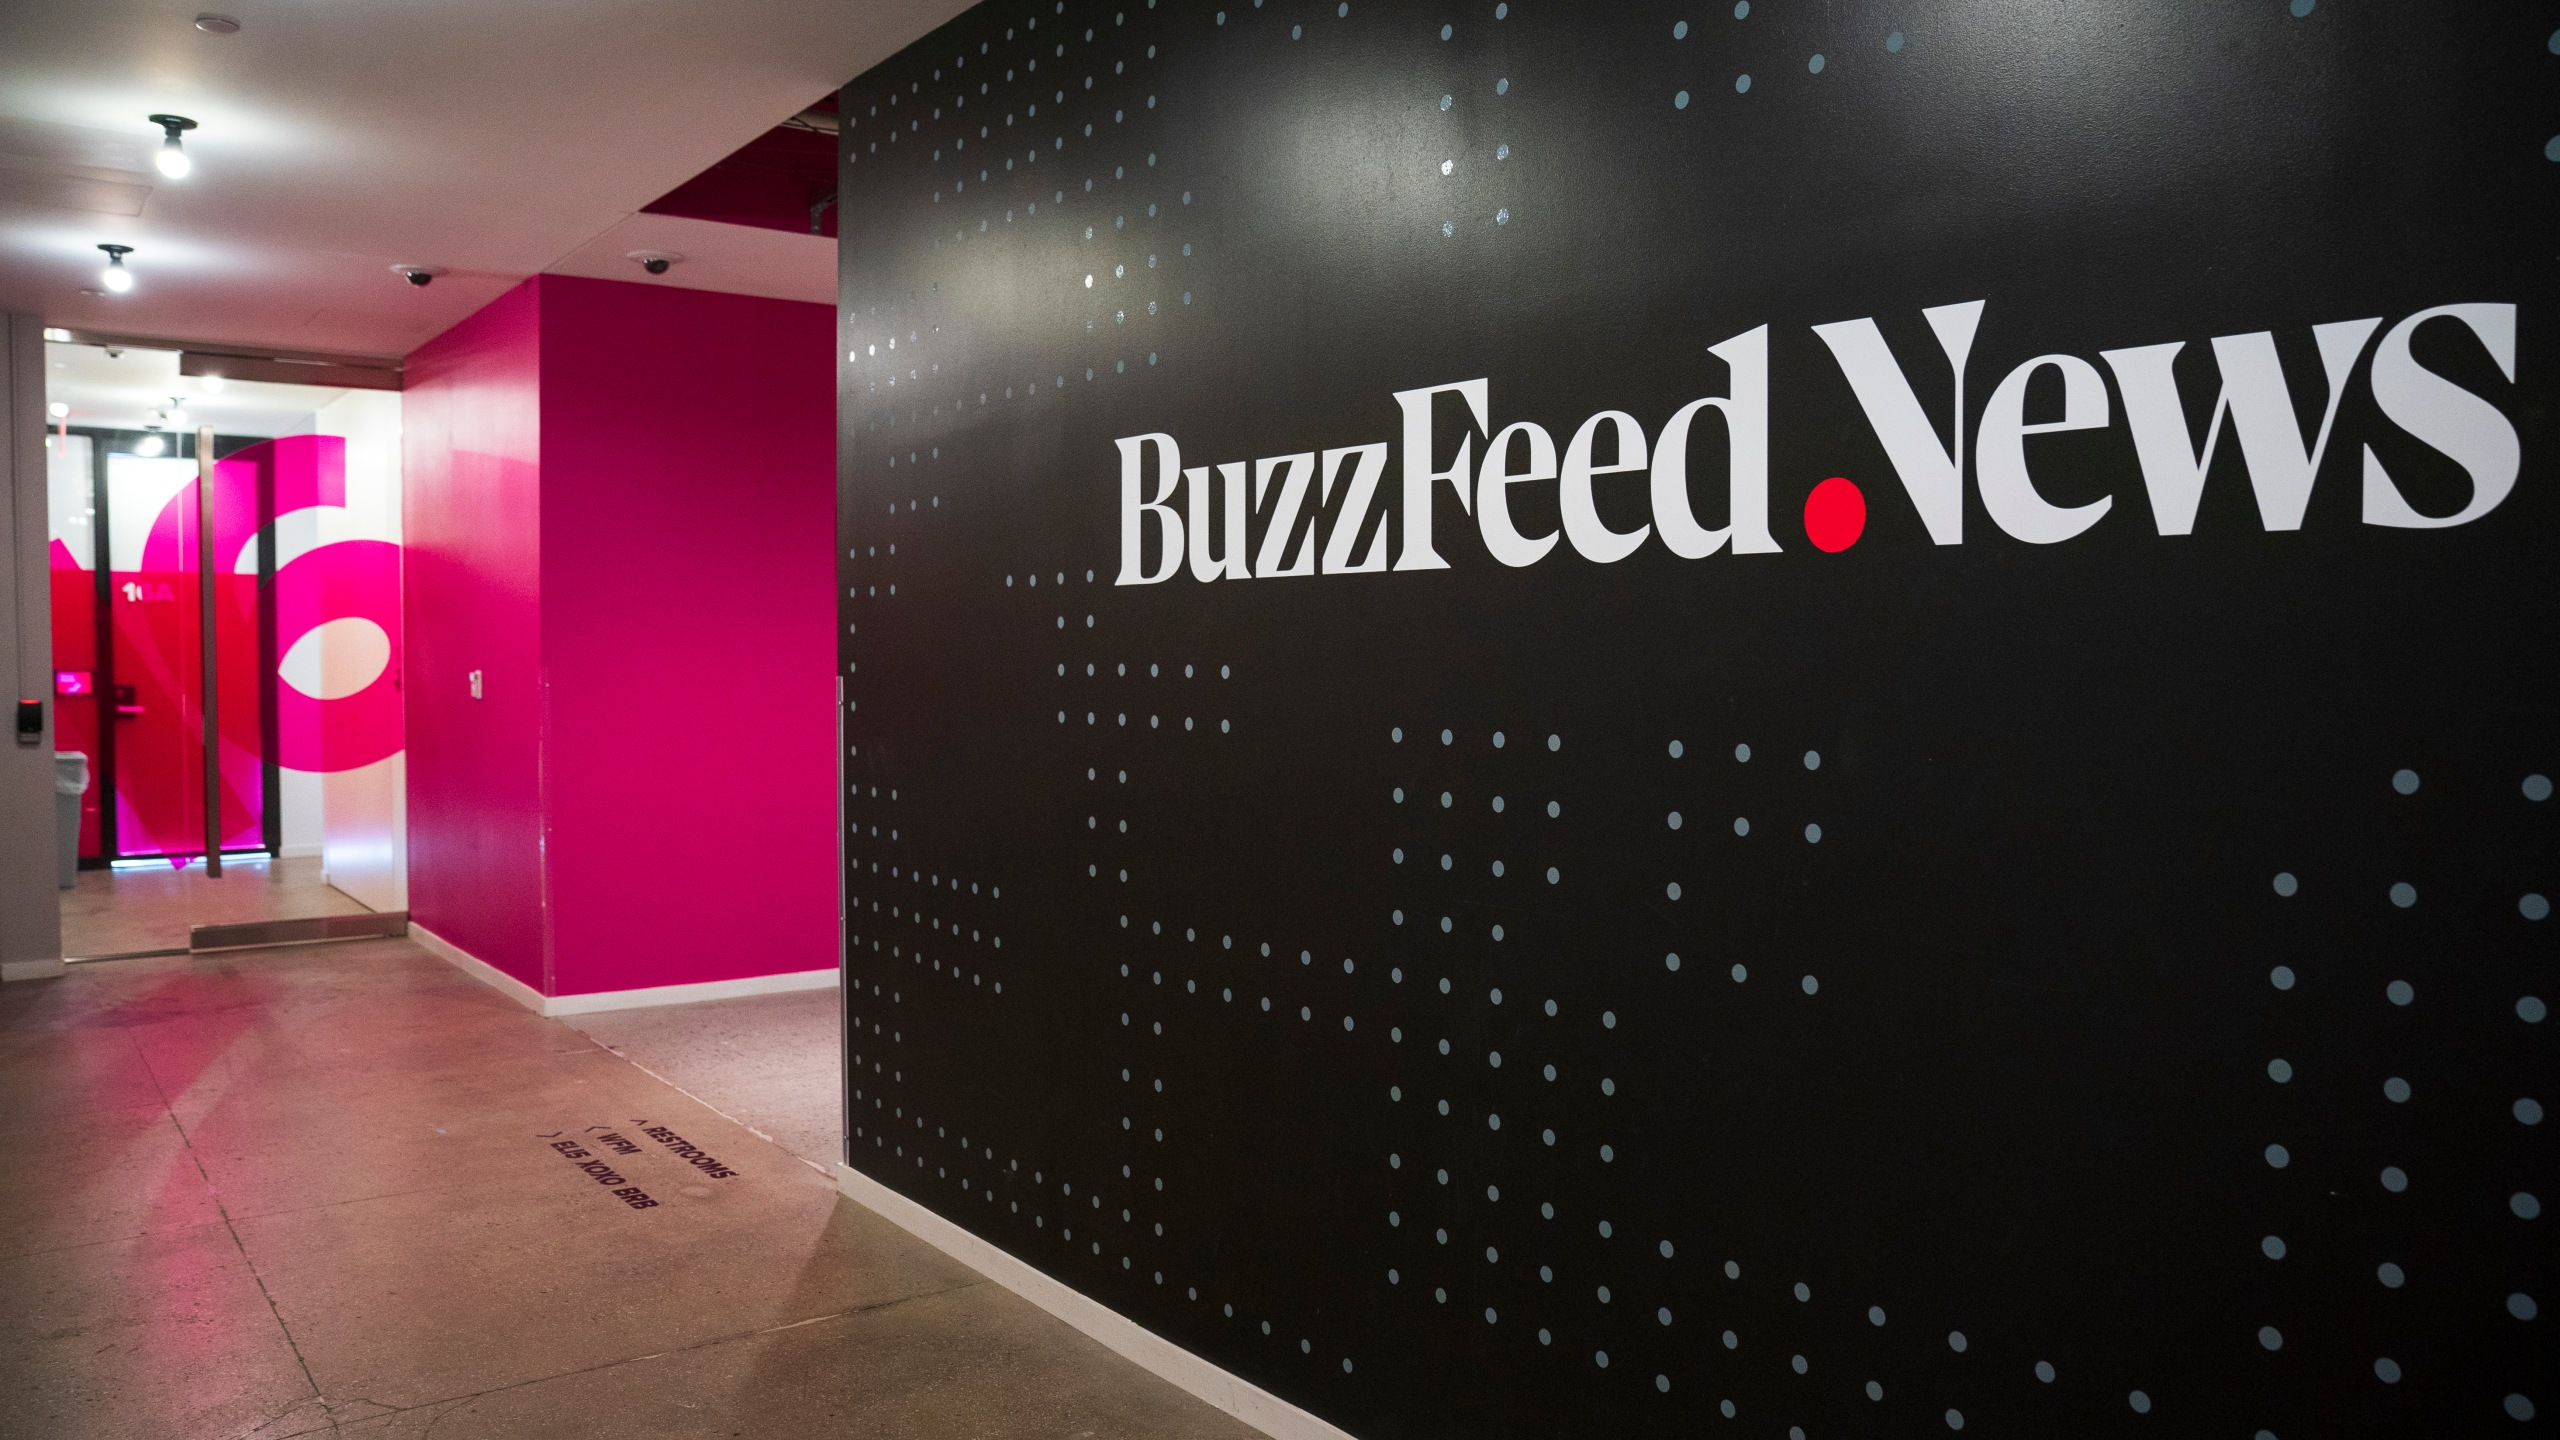 A BuzzFeed News logo adorns a wall inside BuzzFeed headquarters on Dec. 11, 2018 in New York City. (Credit: Drew Angerer/Getty Images)